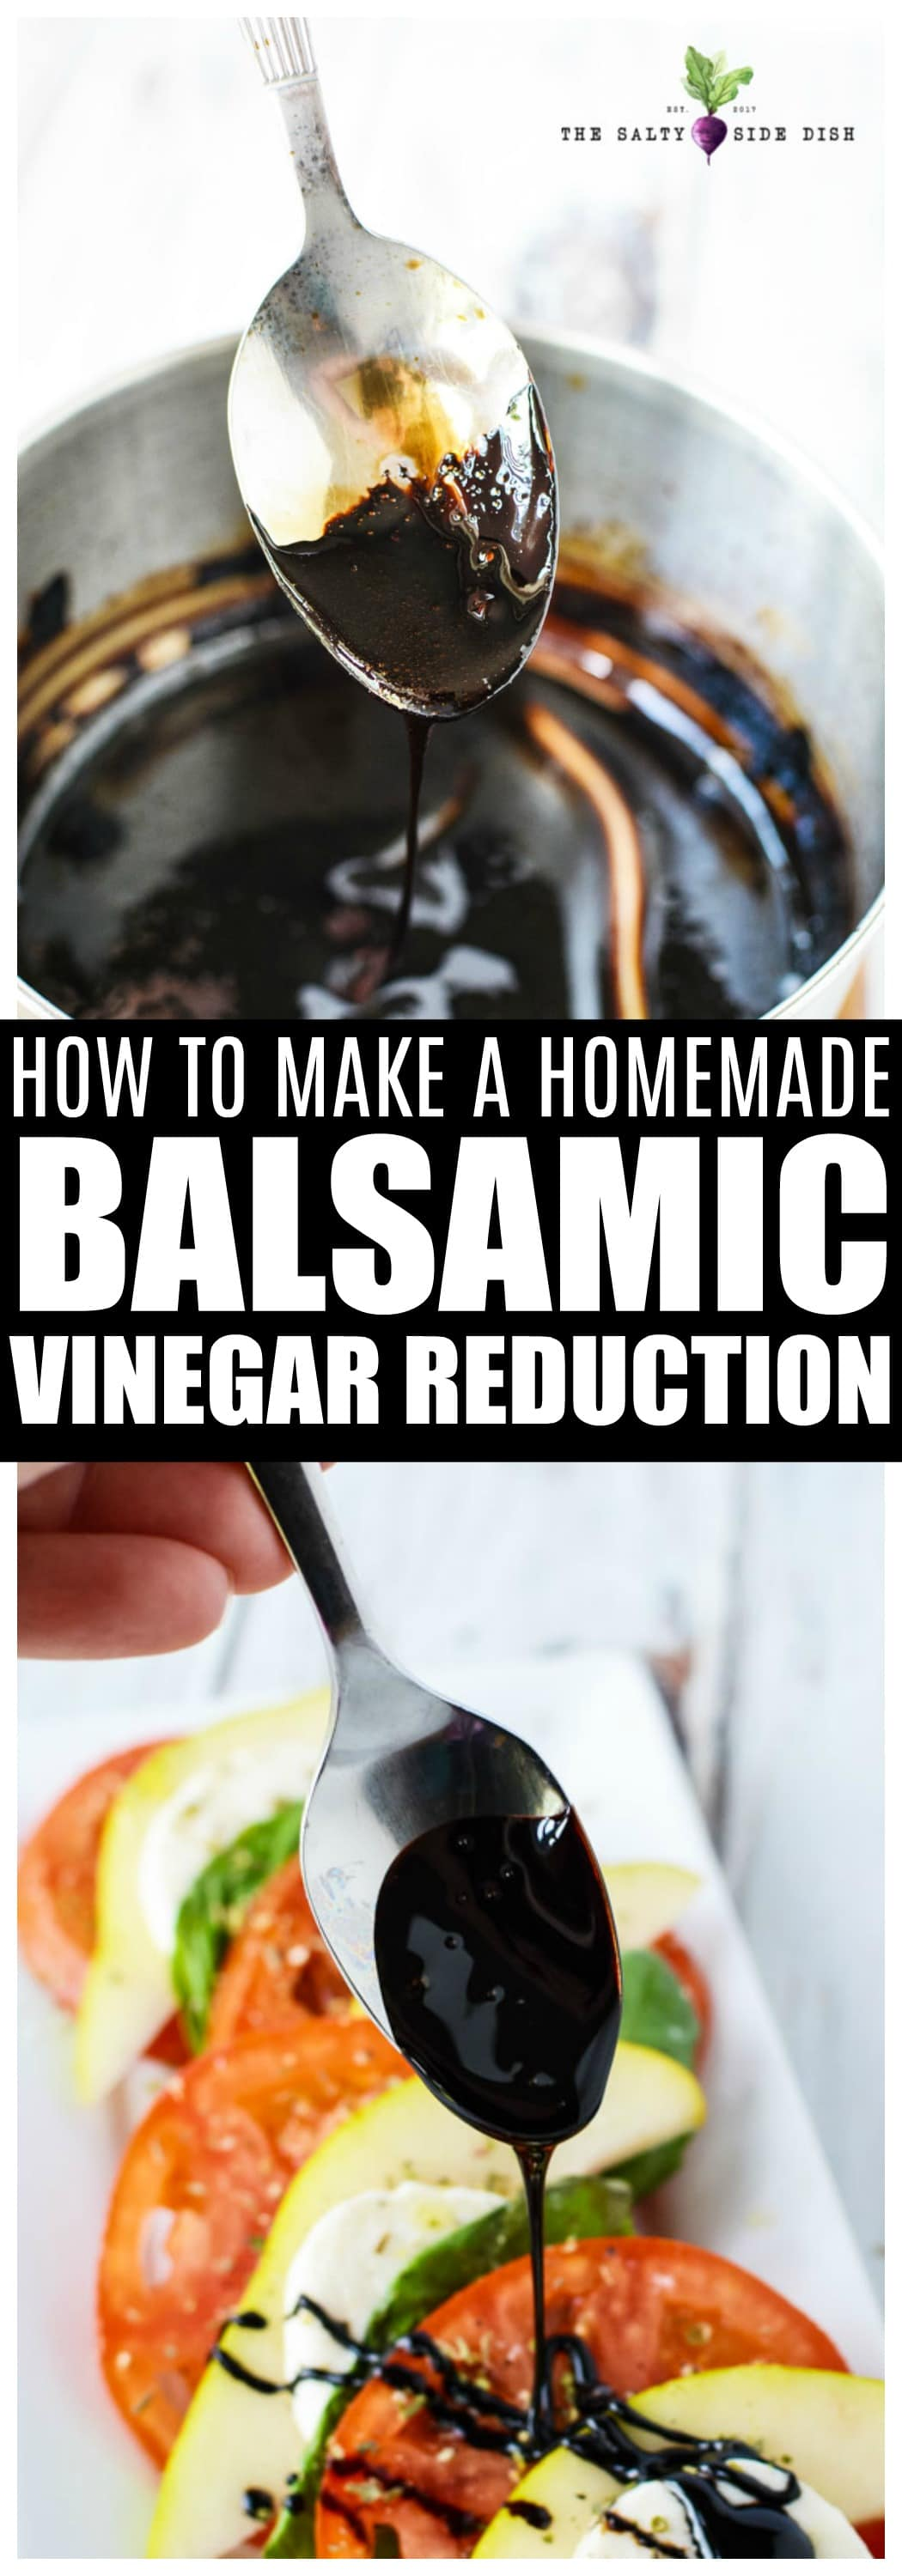 how to make balsamic vinegar reduction